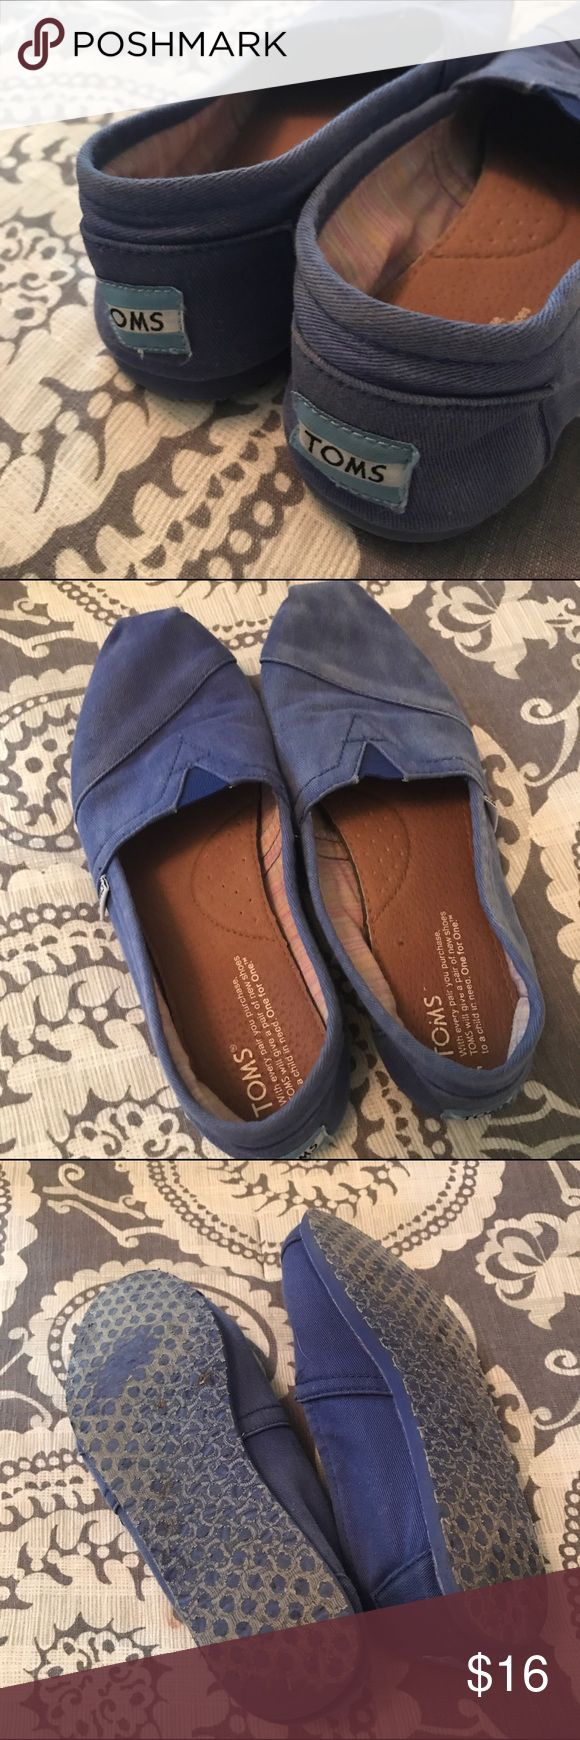 blue acid wash toms 💟 gently used but still tons of life. womens 7.5. no holds or trades. TOMS Shoes Flats & Loafers